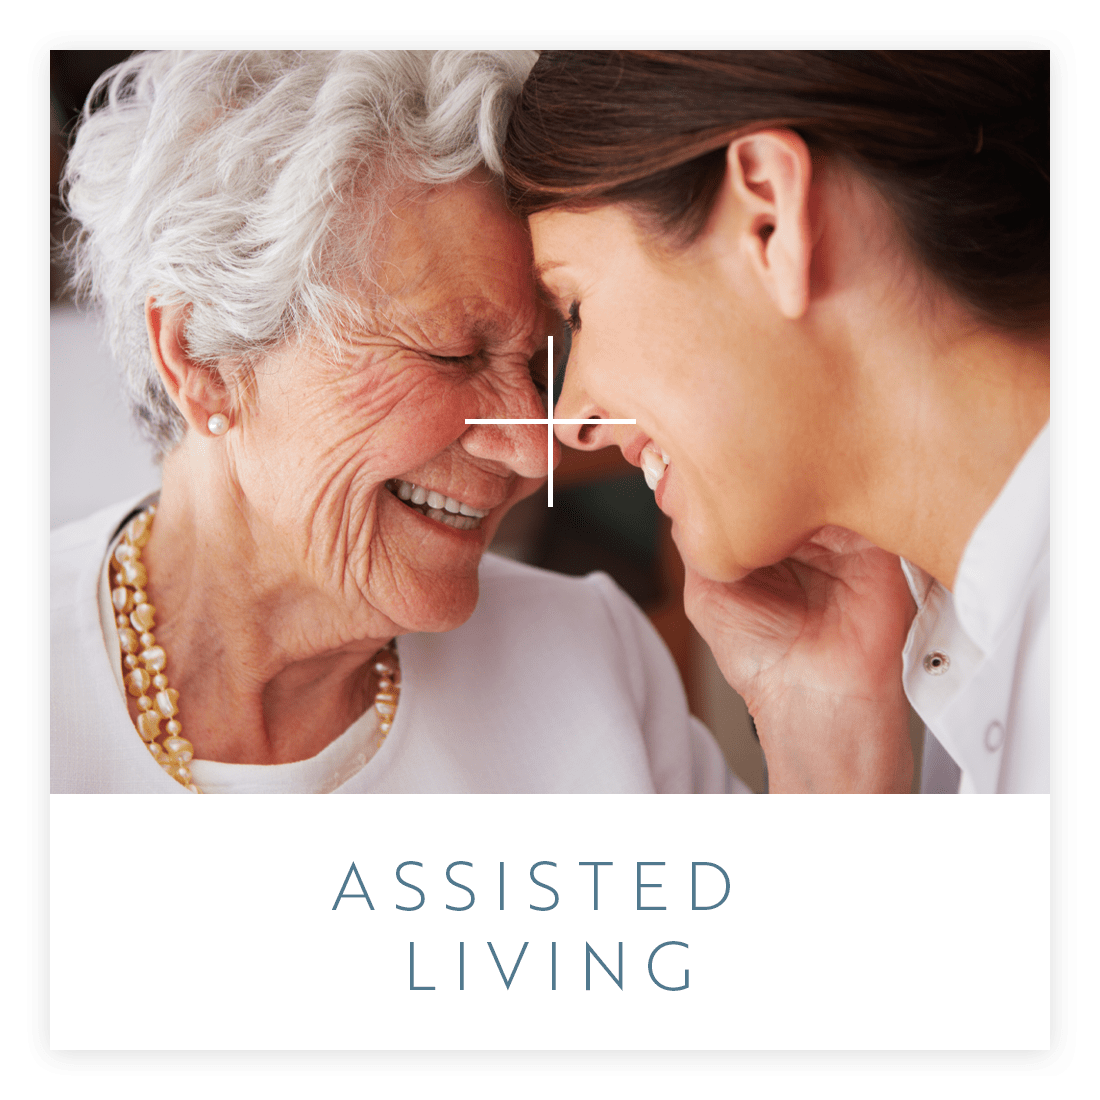 View our Assisted Living services at Cypress Place in Ventura, California